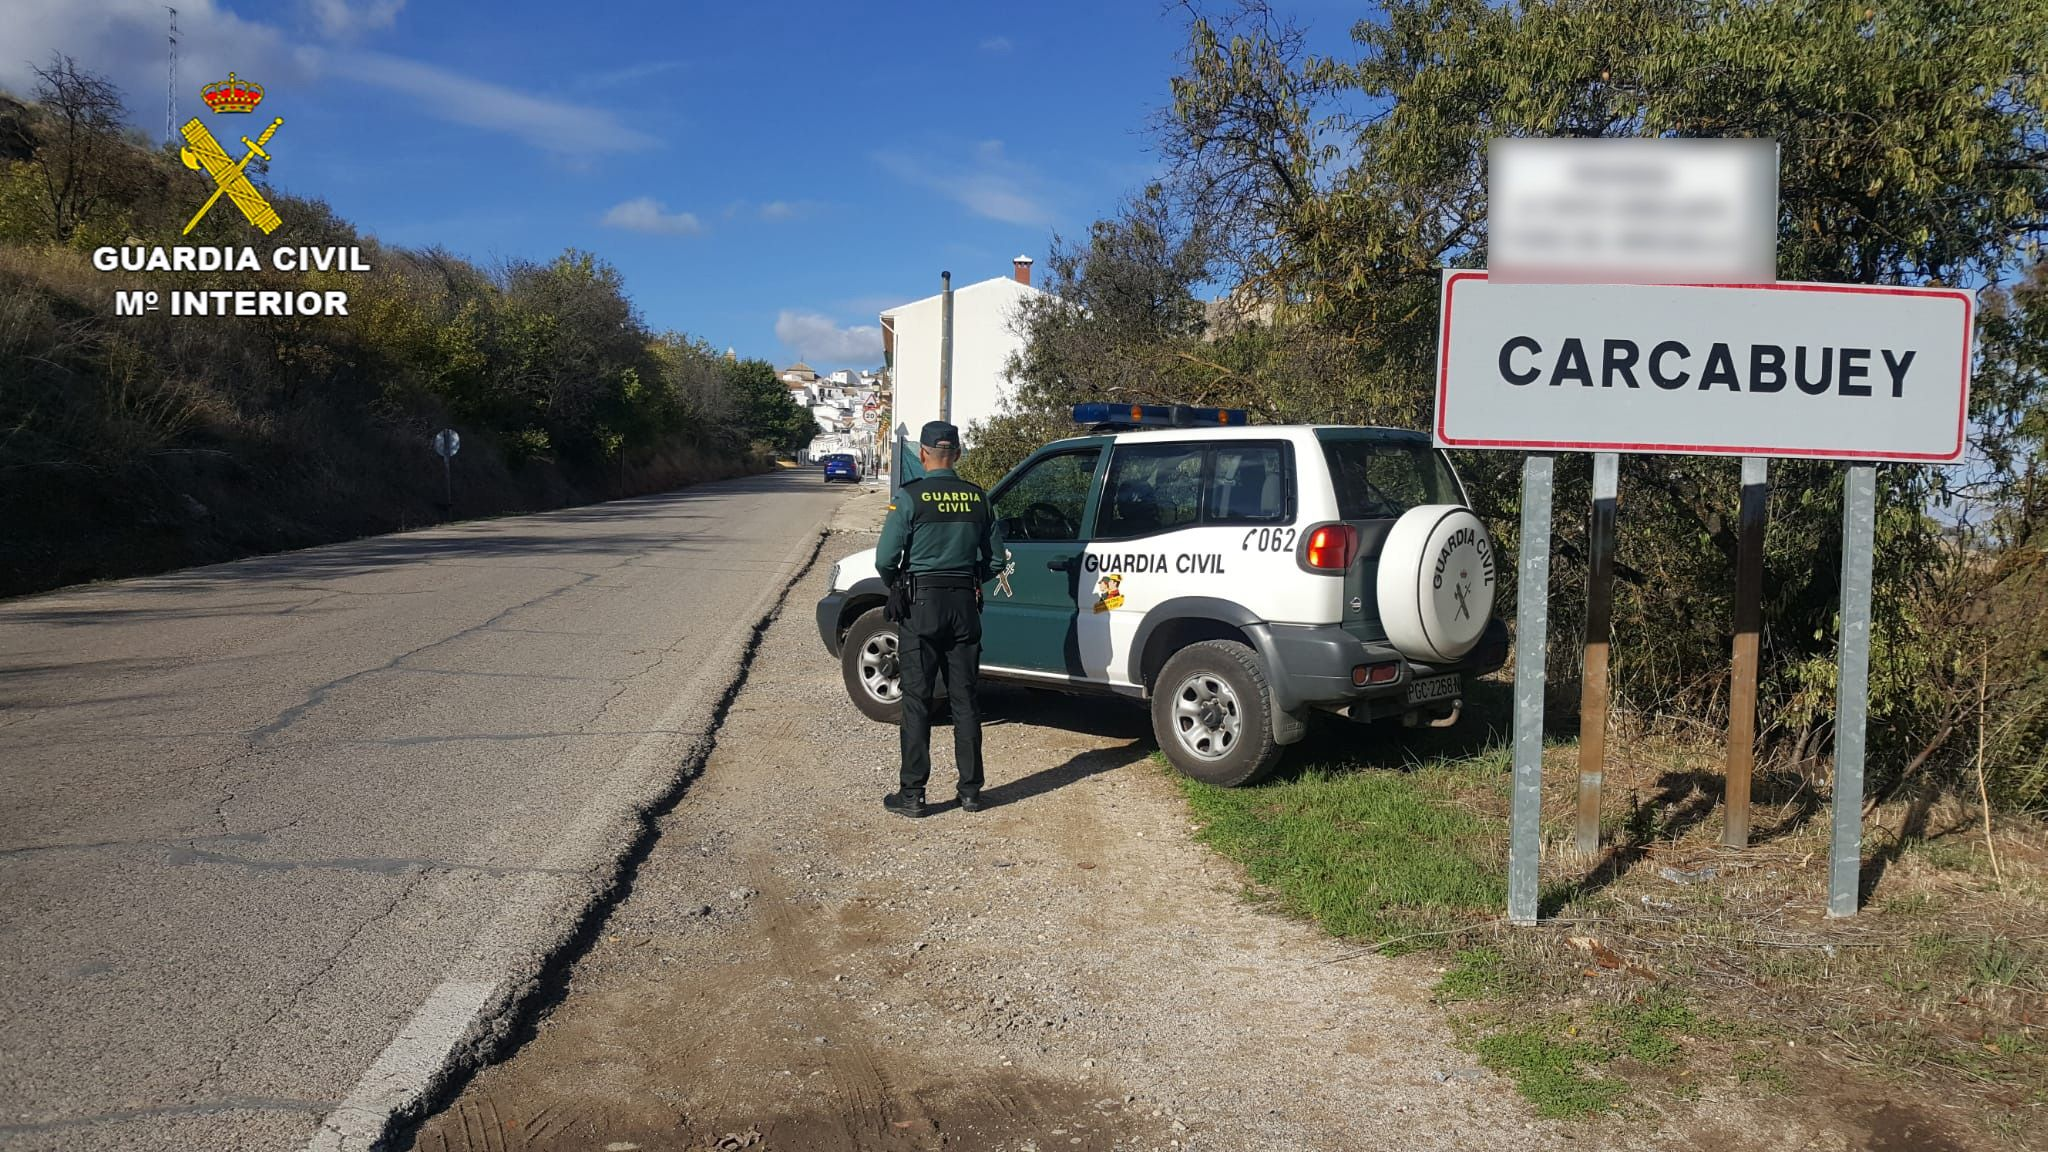 Puesto Carcabuey de la Guardia Civil.